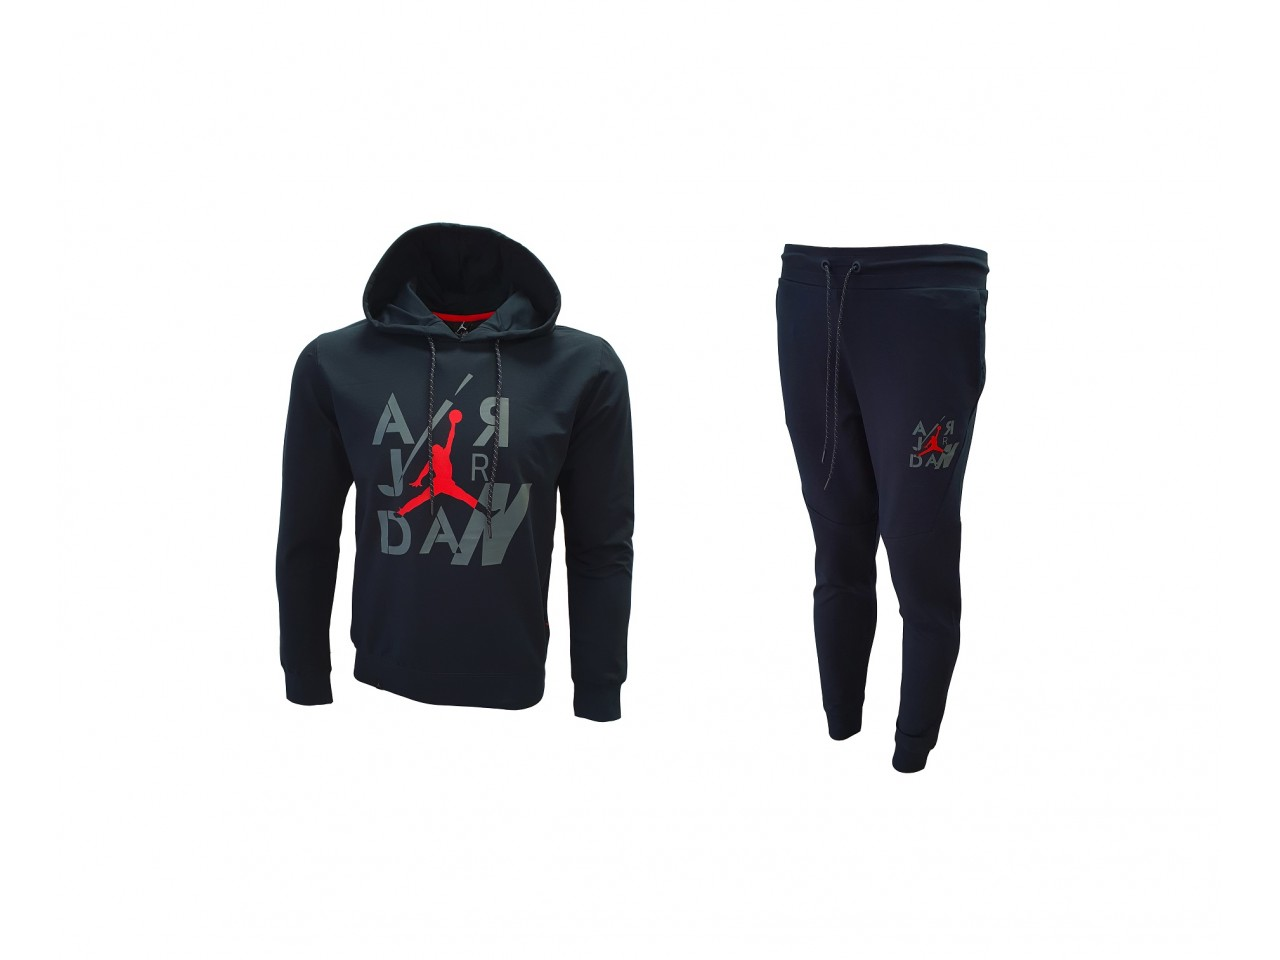 Nike AIR JORDAN Sweatshirt + Pants Dark Blue